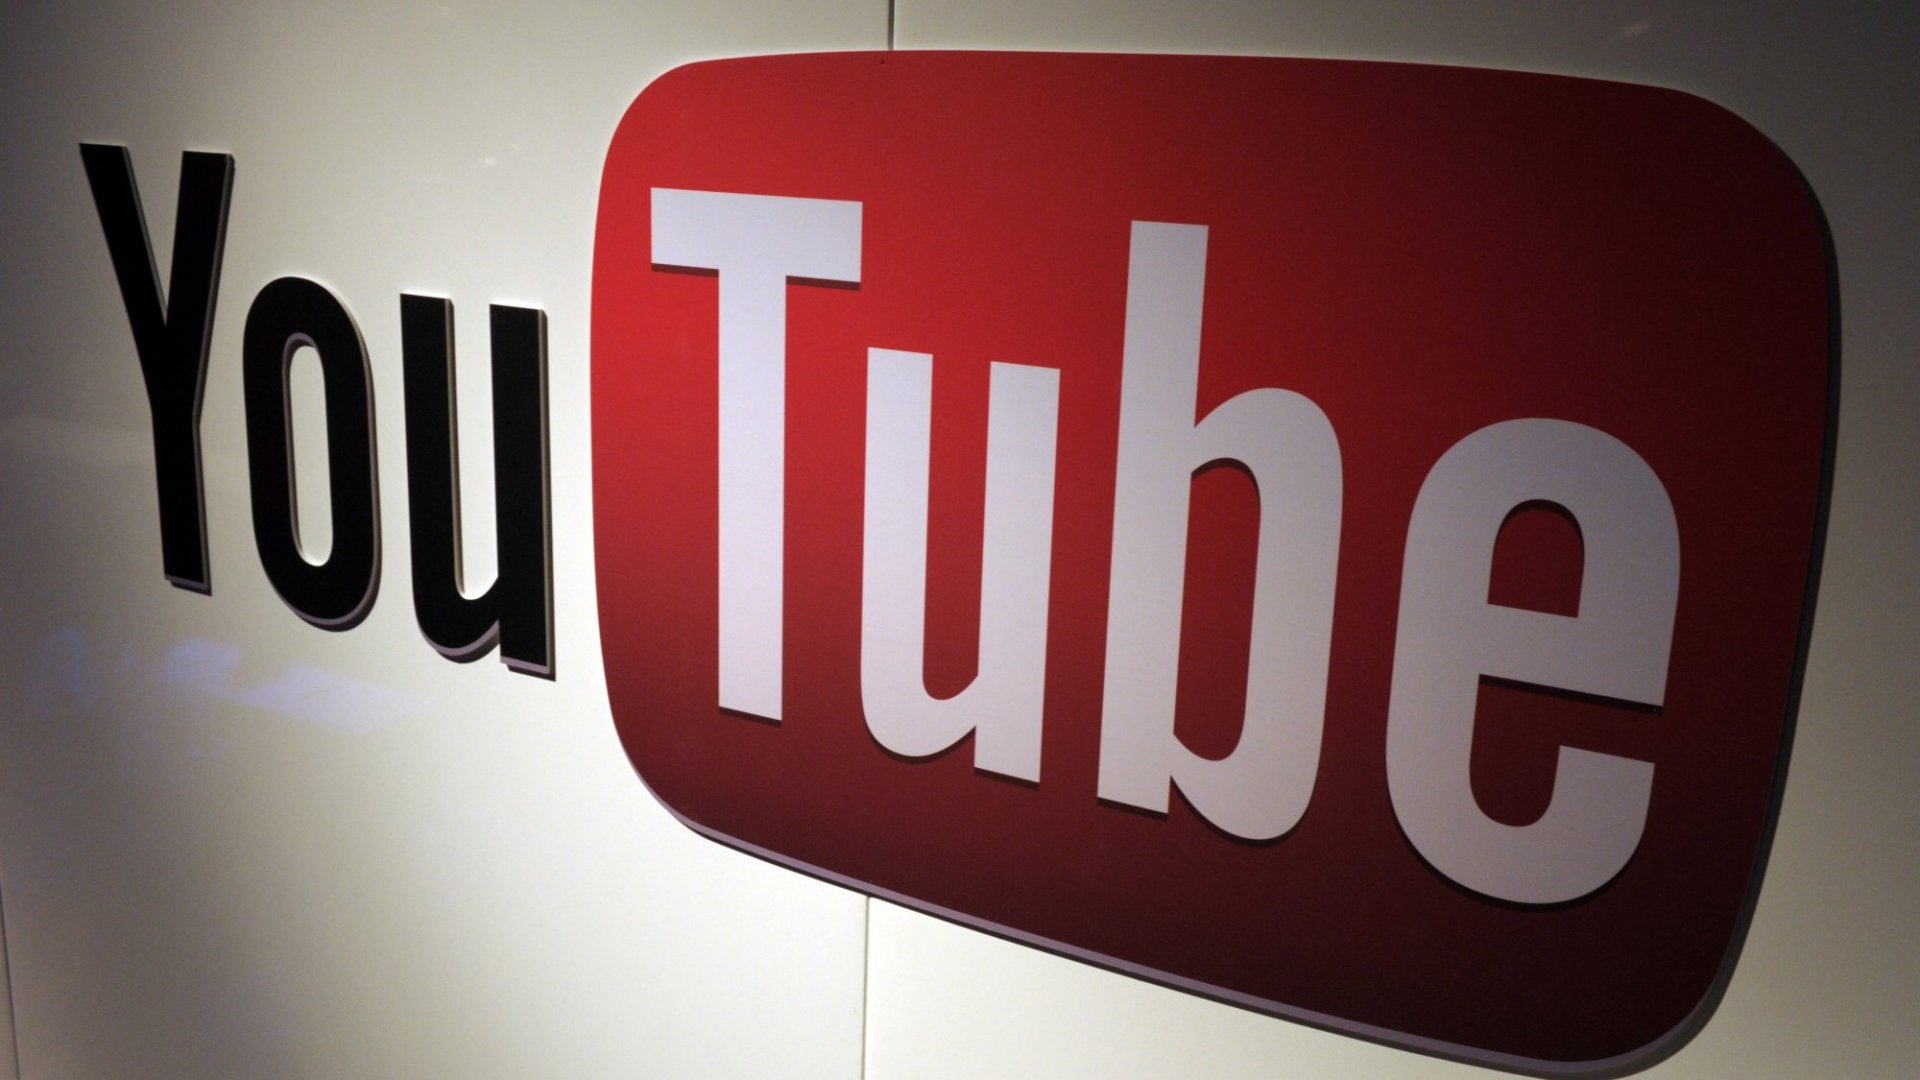 A New Report Says YouTube Is Considering 2 Big Changes That Could Radically Transform It